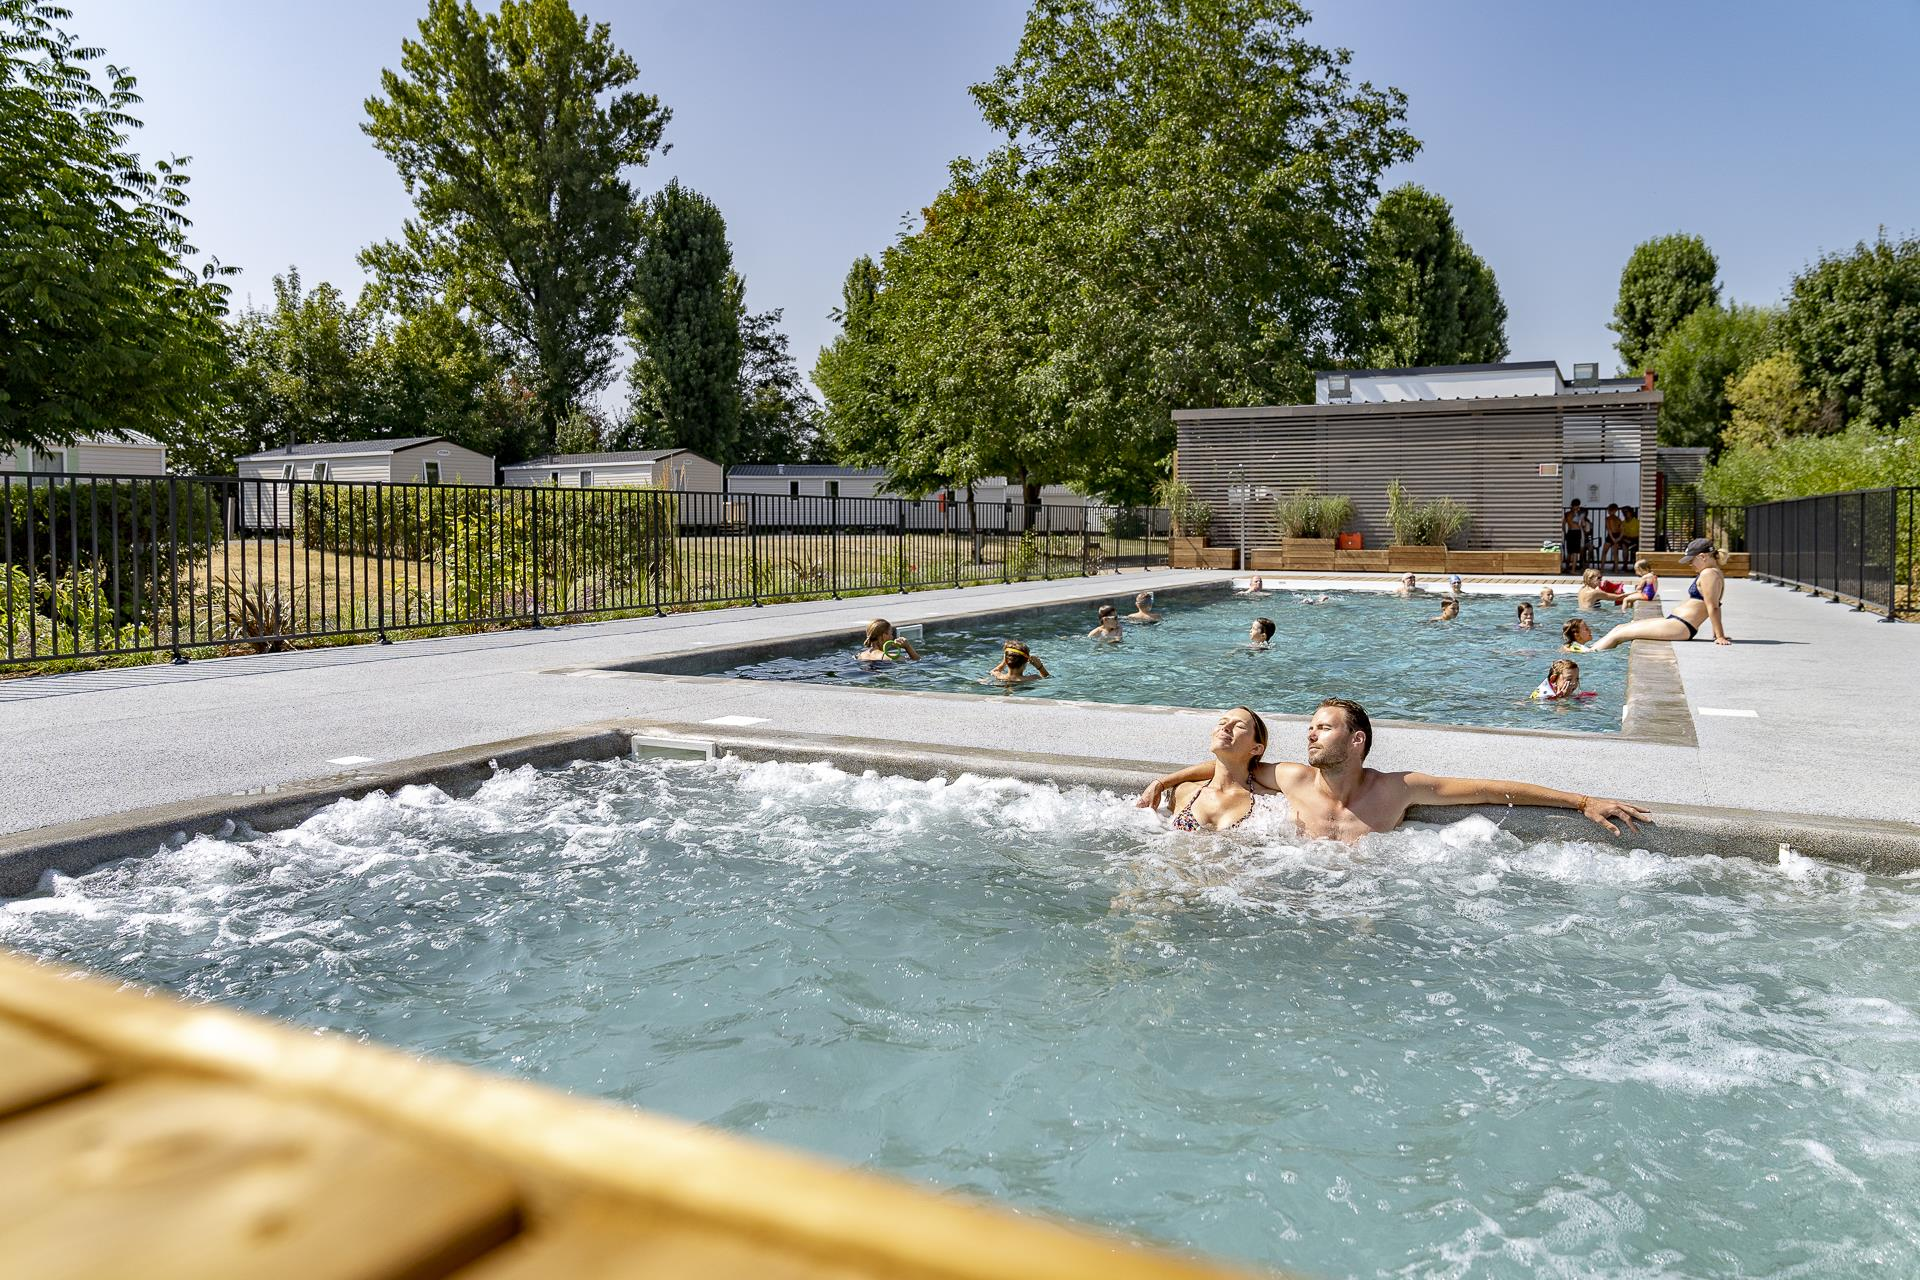 Establishment Camping Sandaya Paris Maisons Laffitte - Maisons-Laffitte